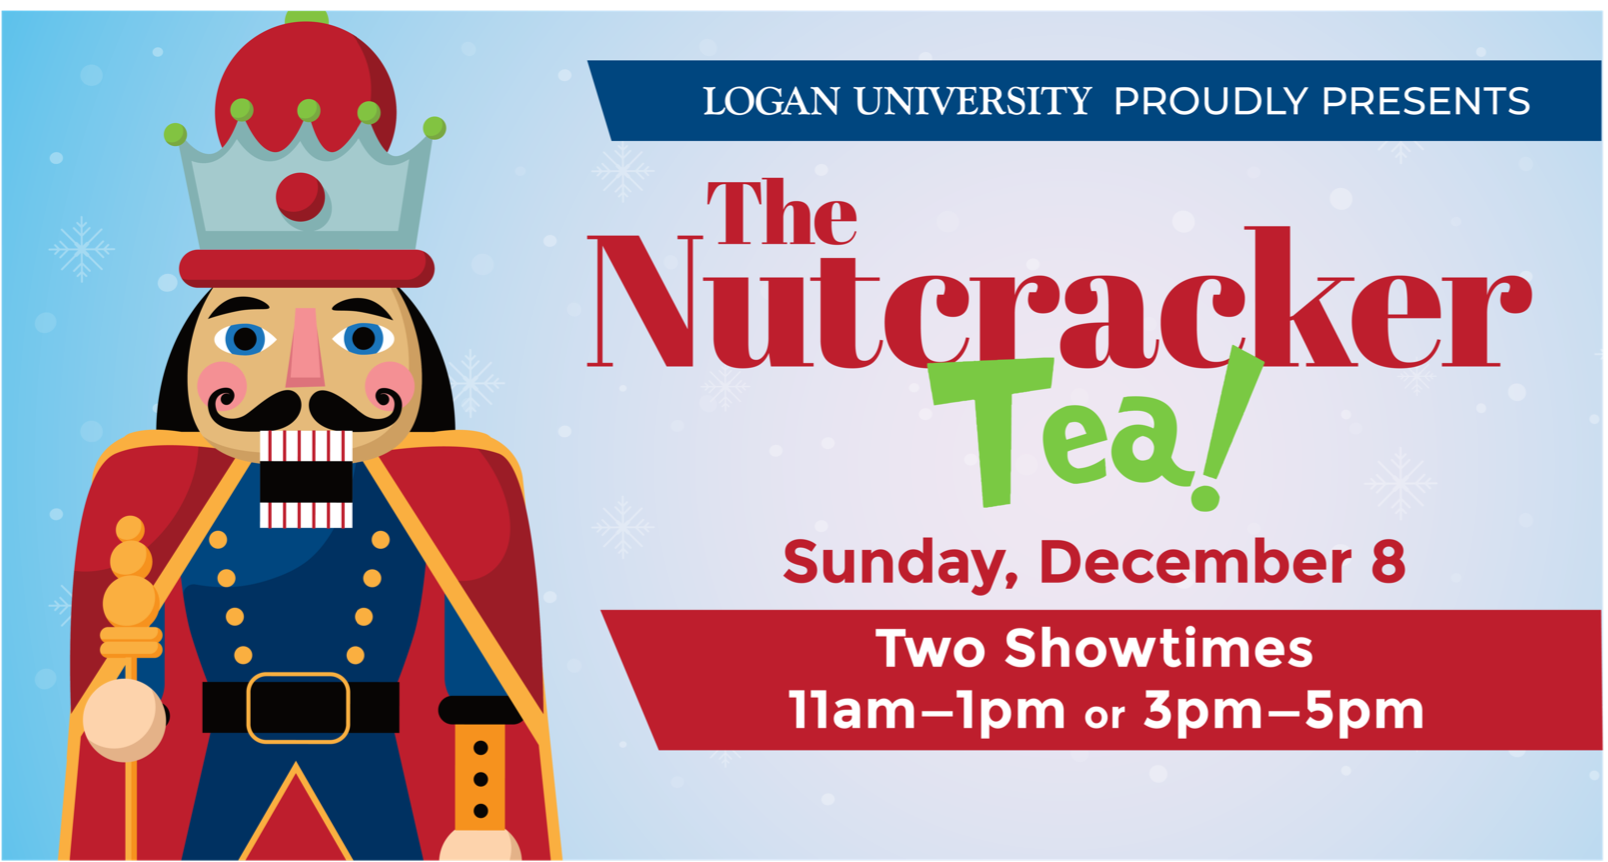 Nutcracker Tea flyer image.